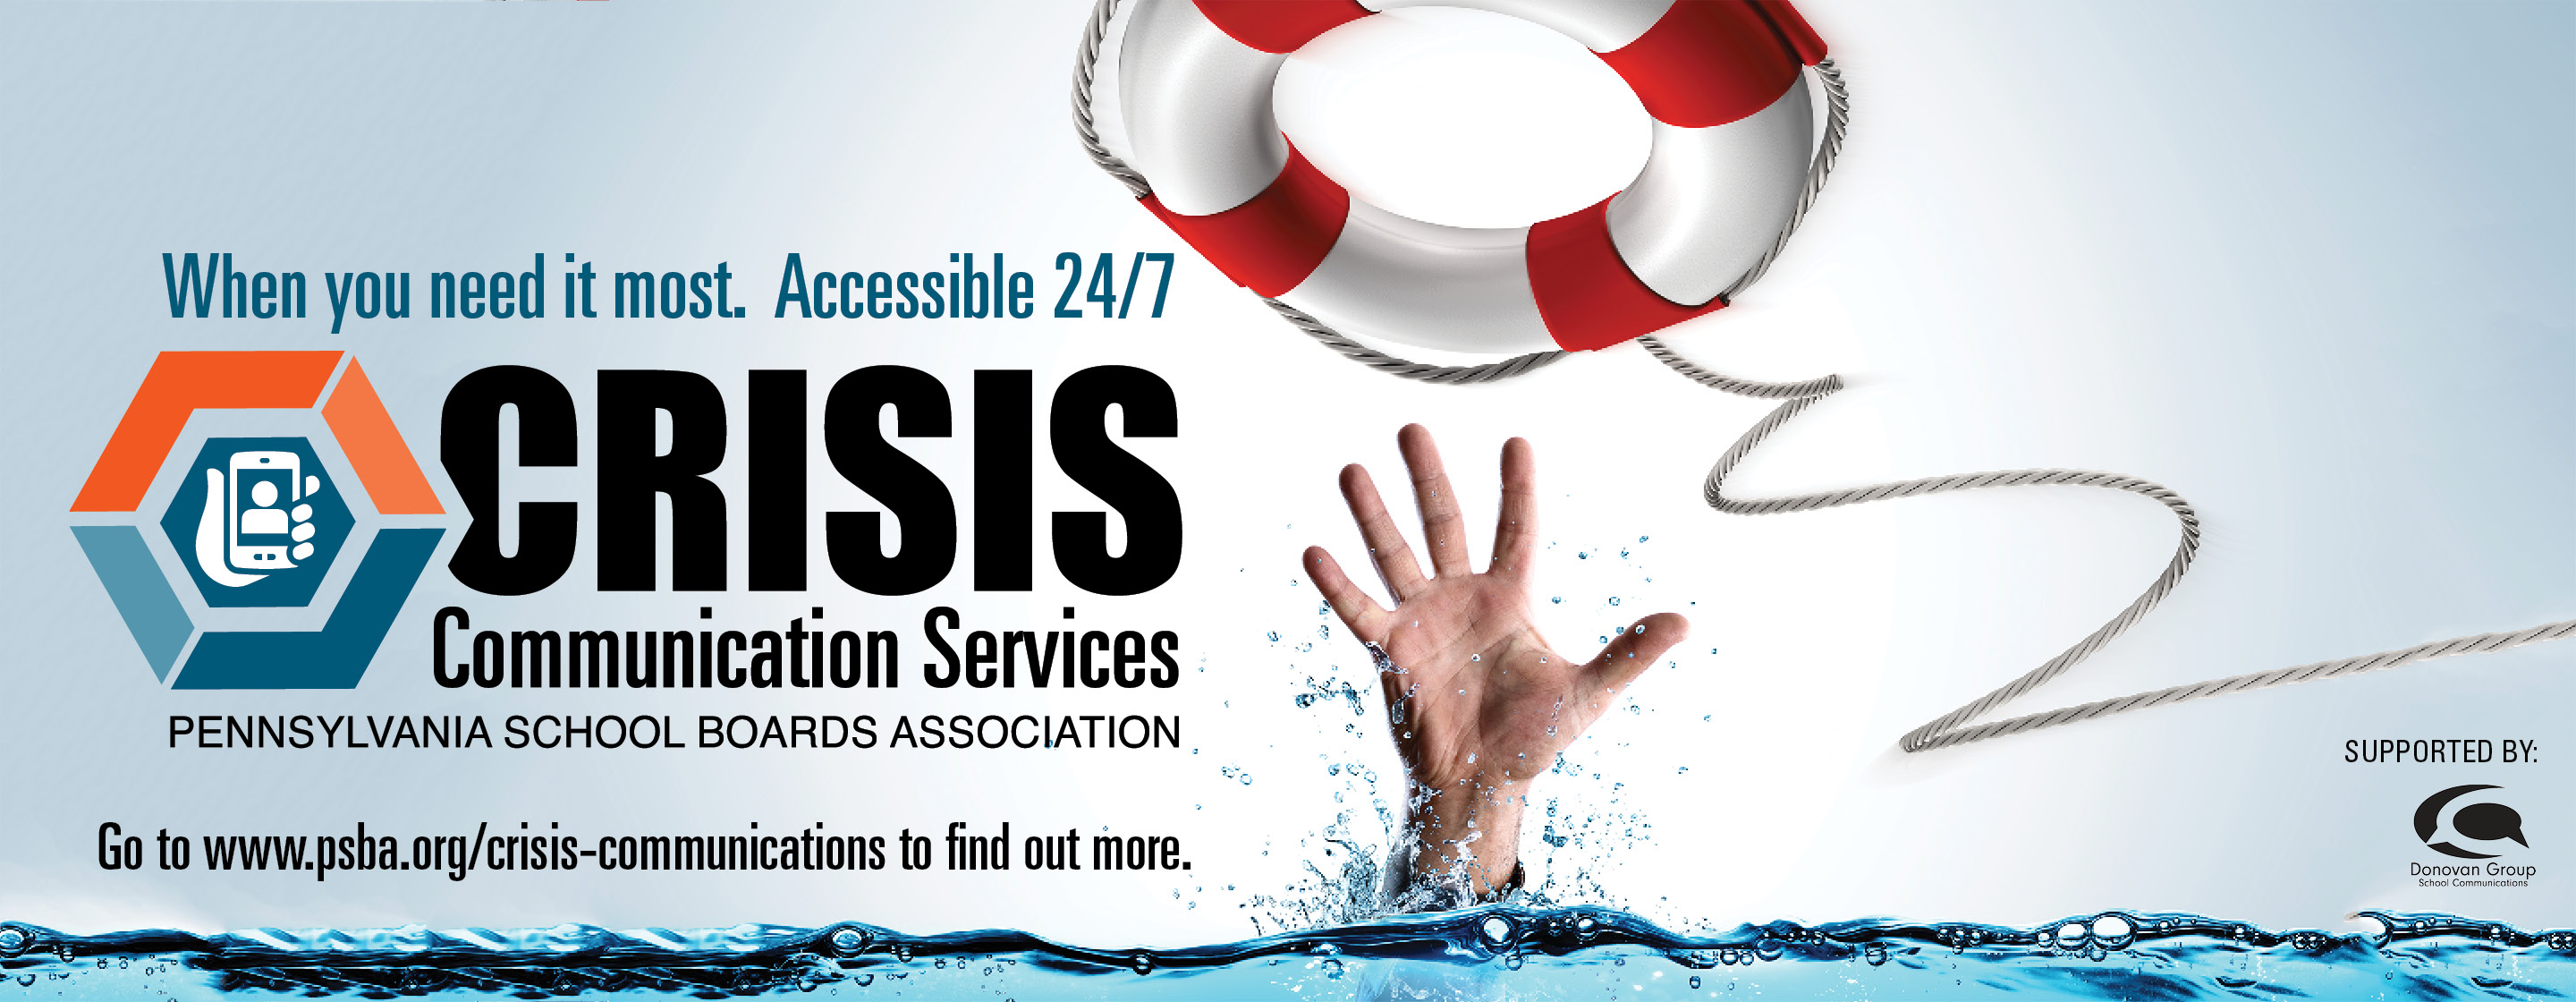 Crisis Communication Services available now